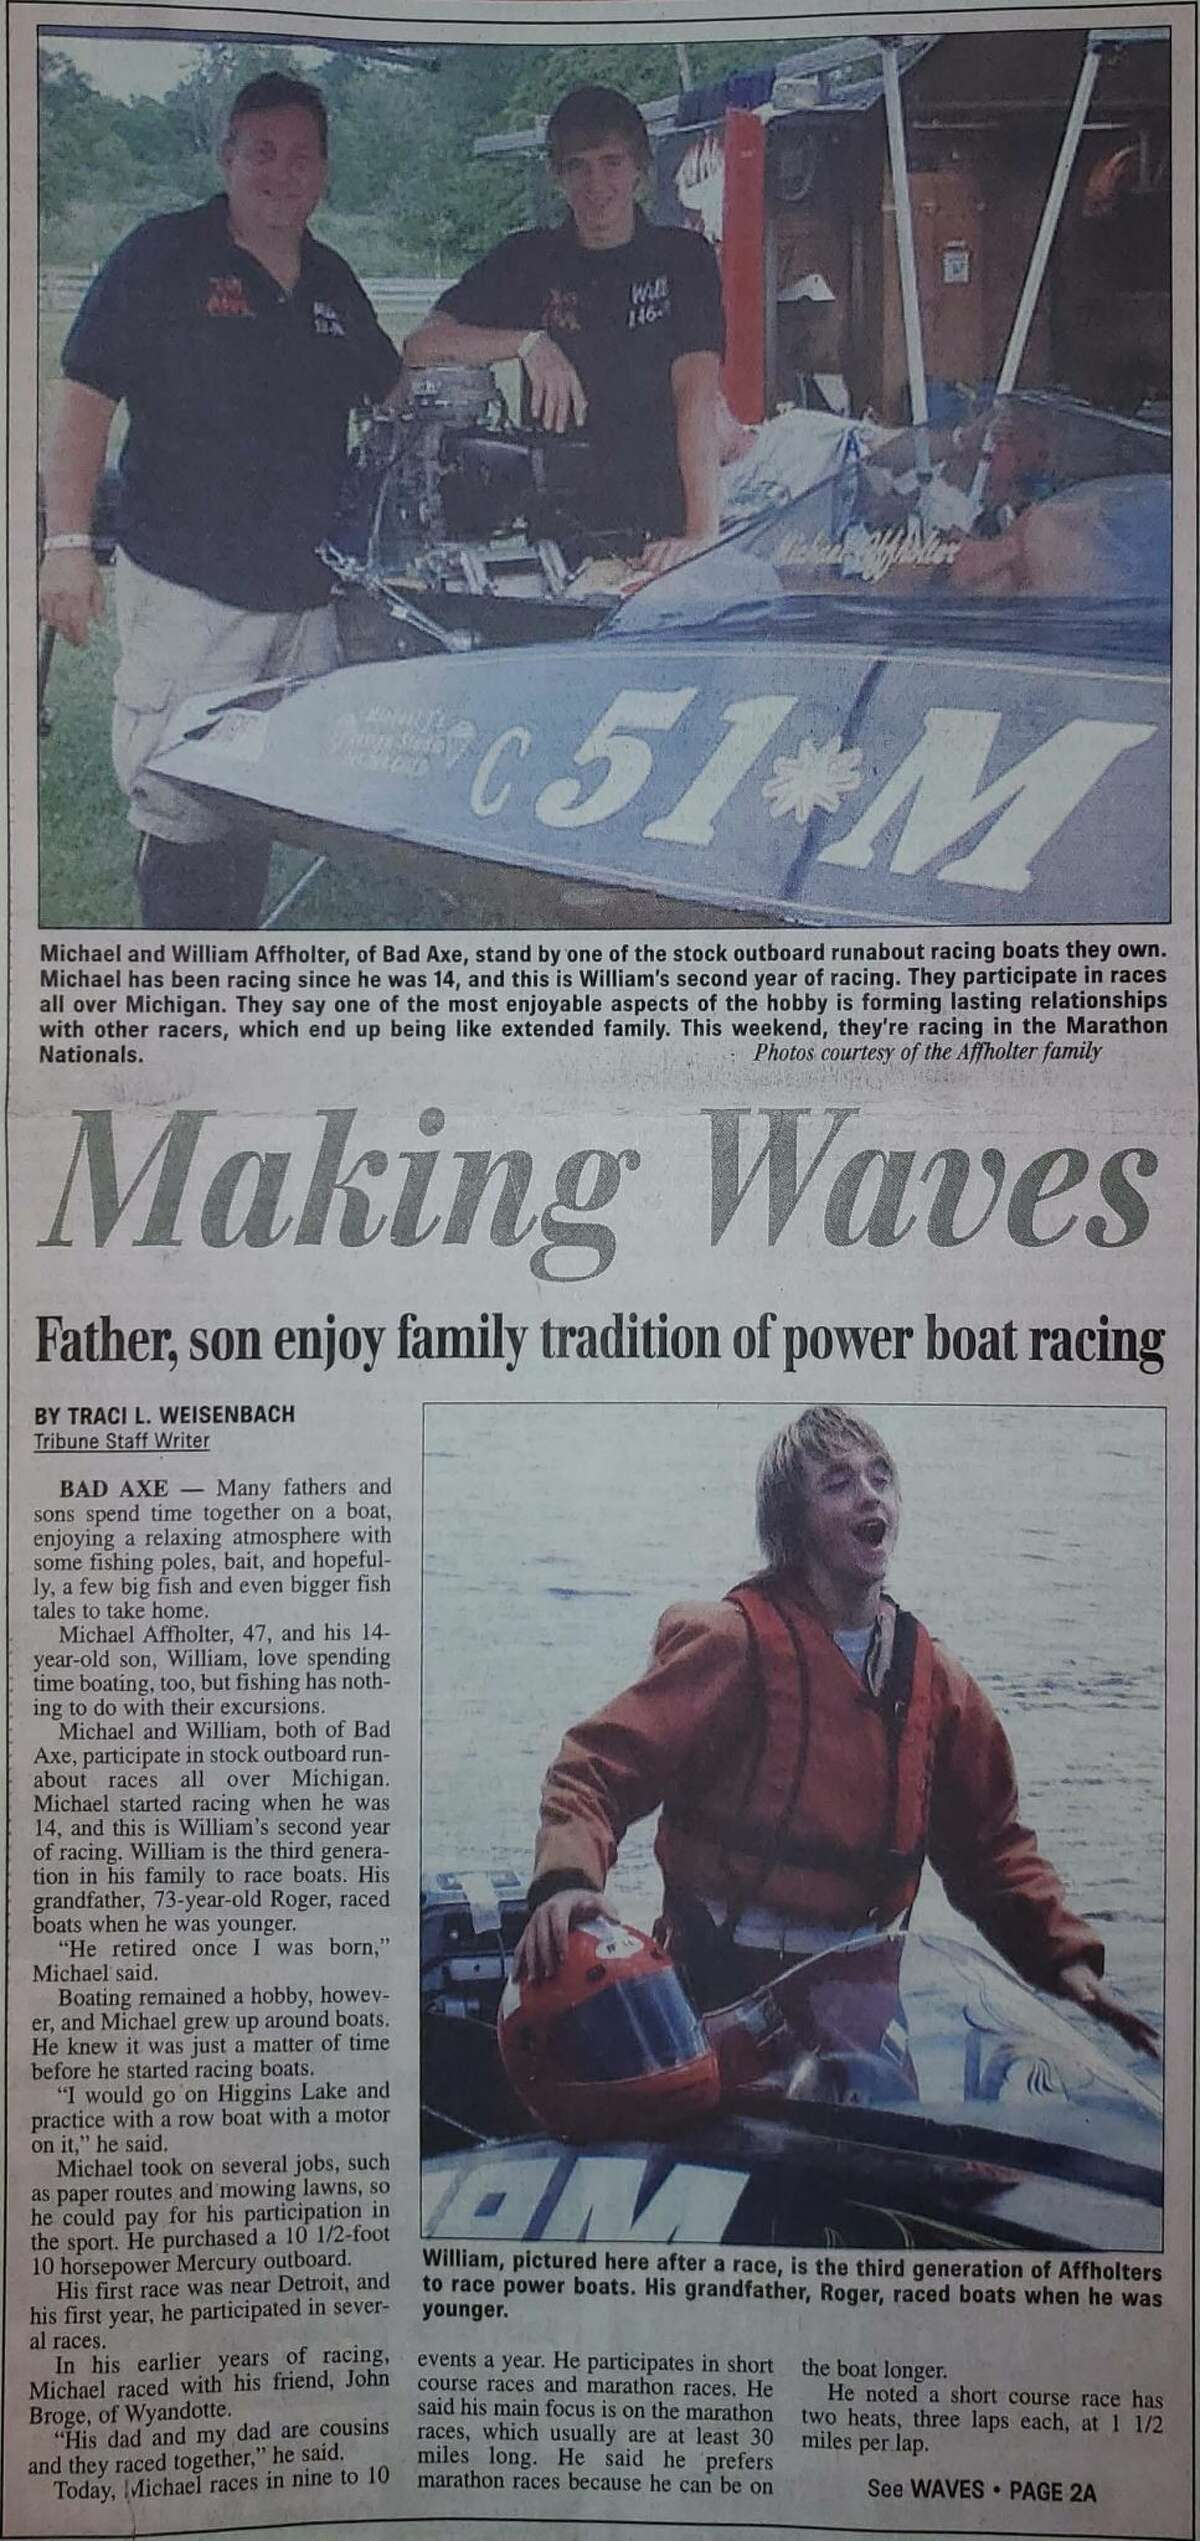 For this week's Tribune Throwback we take a look in the archives from July 2010.